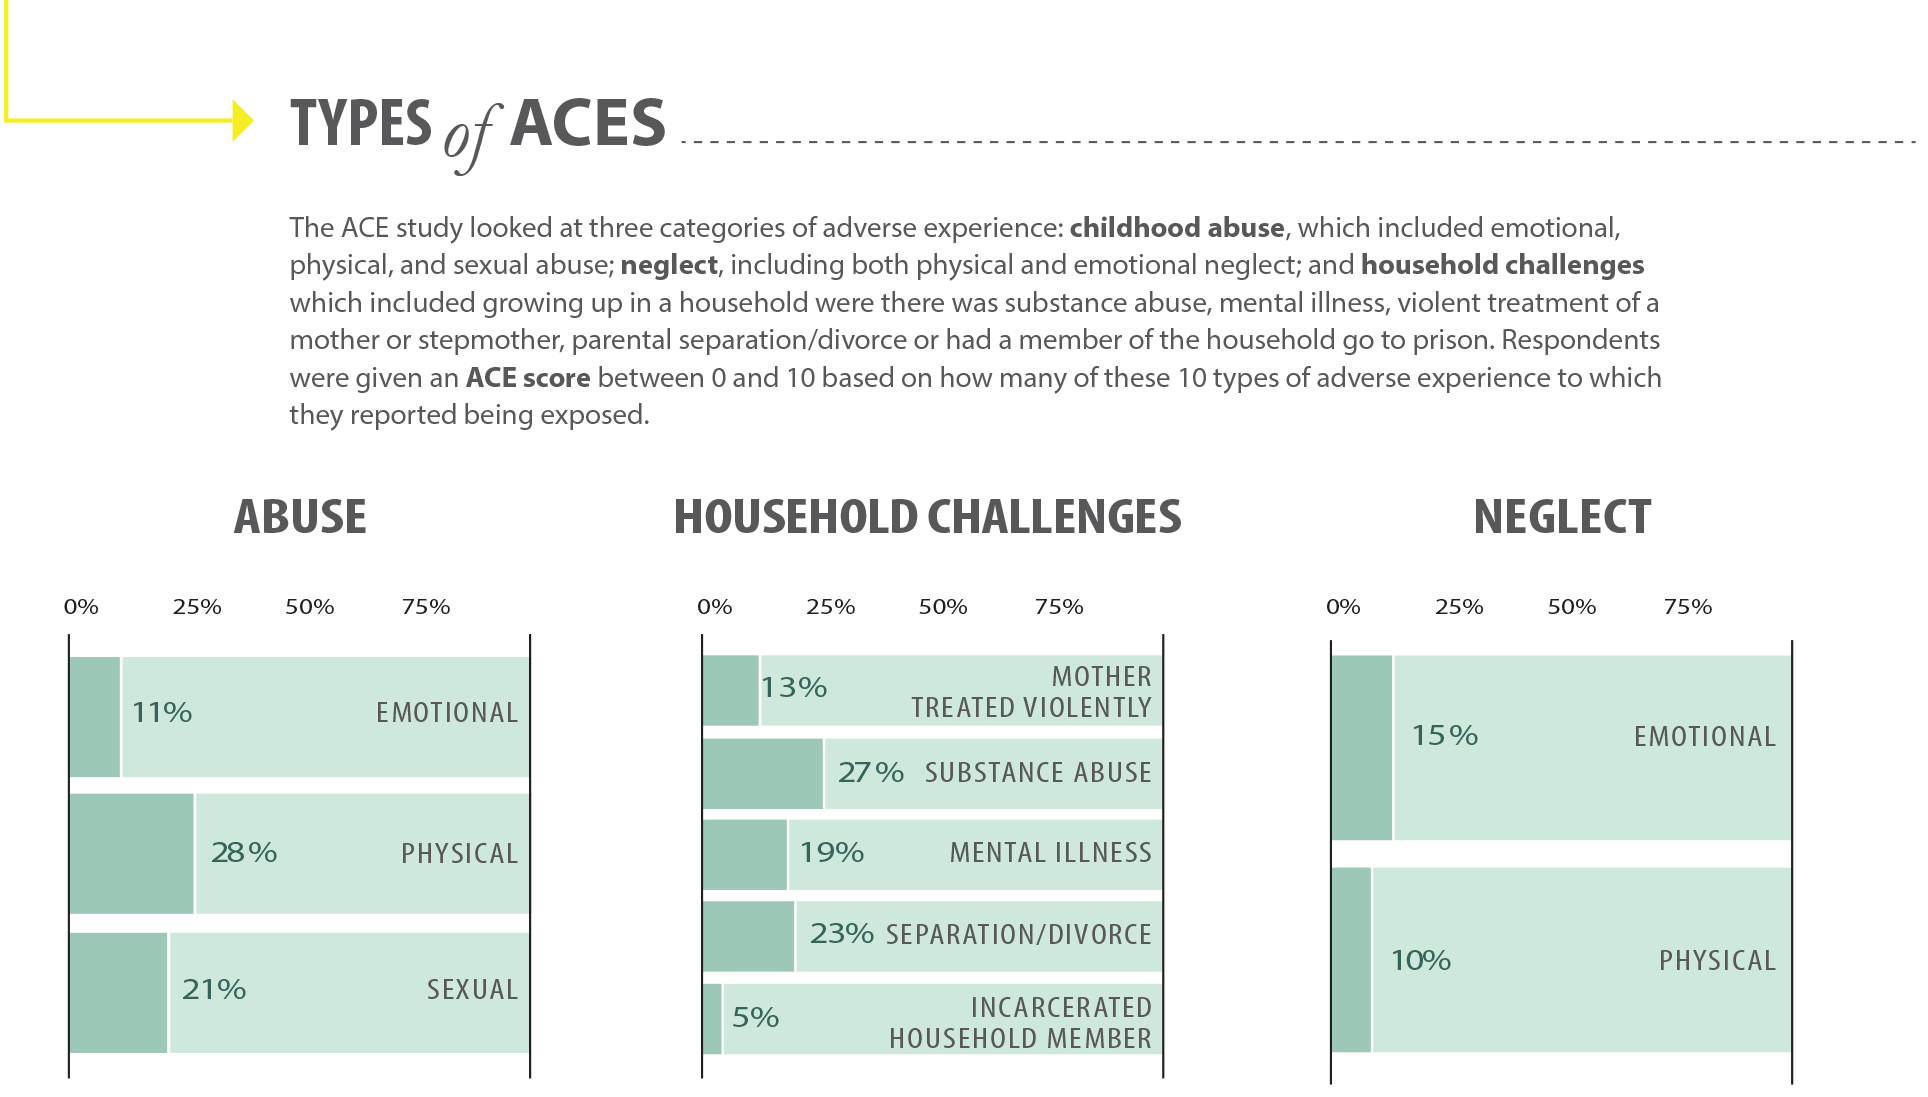 types-of-aces-abuse-household-challenges-neglect